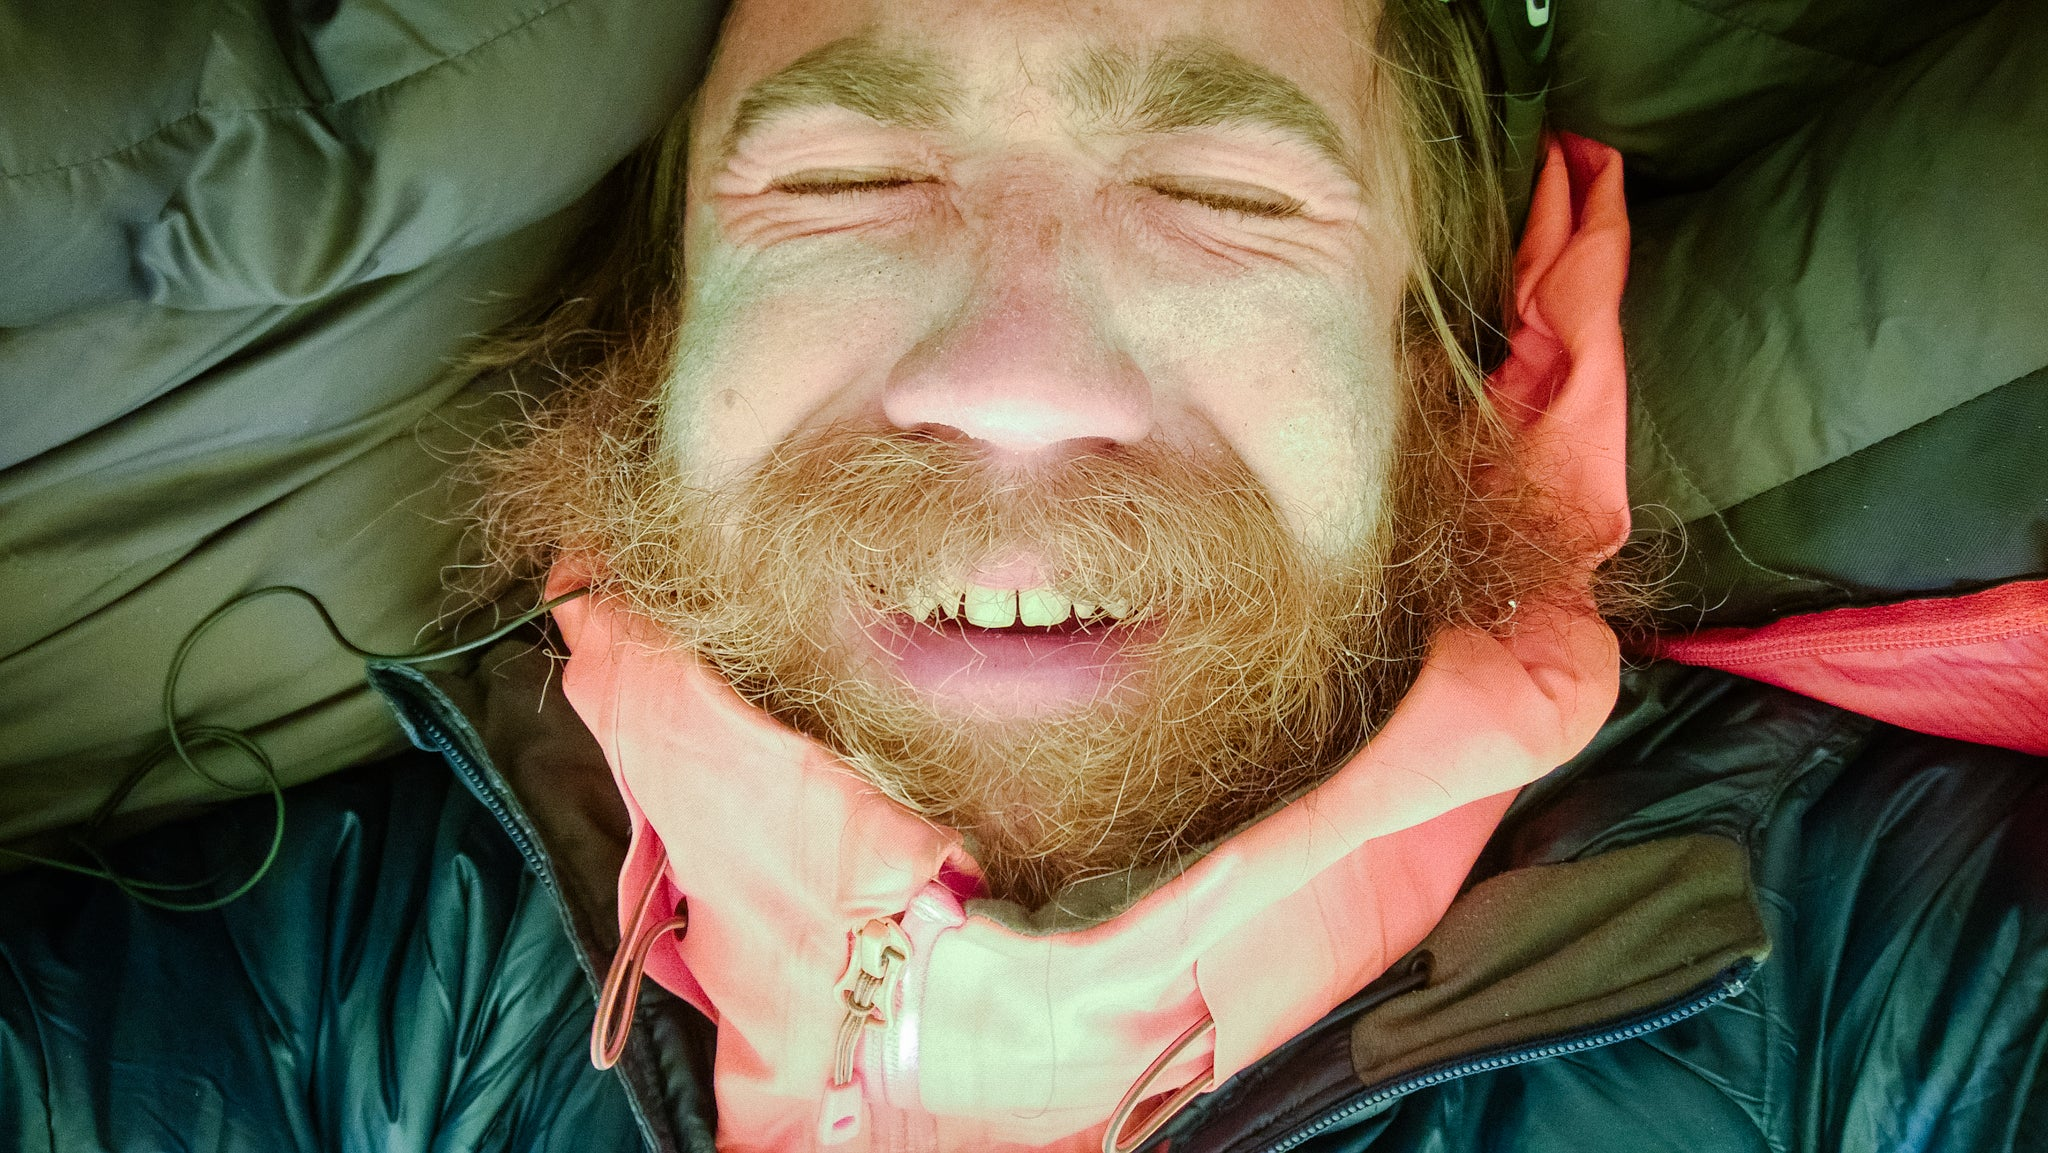 What It Feels Like To Vomit, Just After Summiting A 20,000' Peak